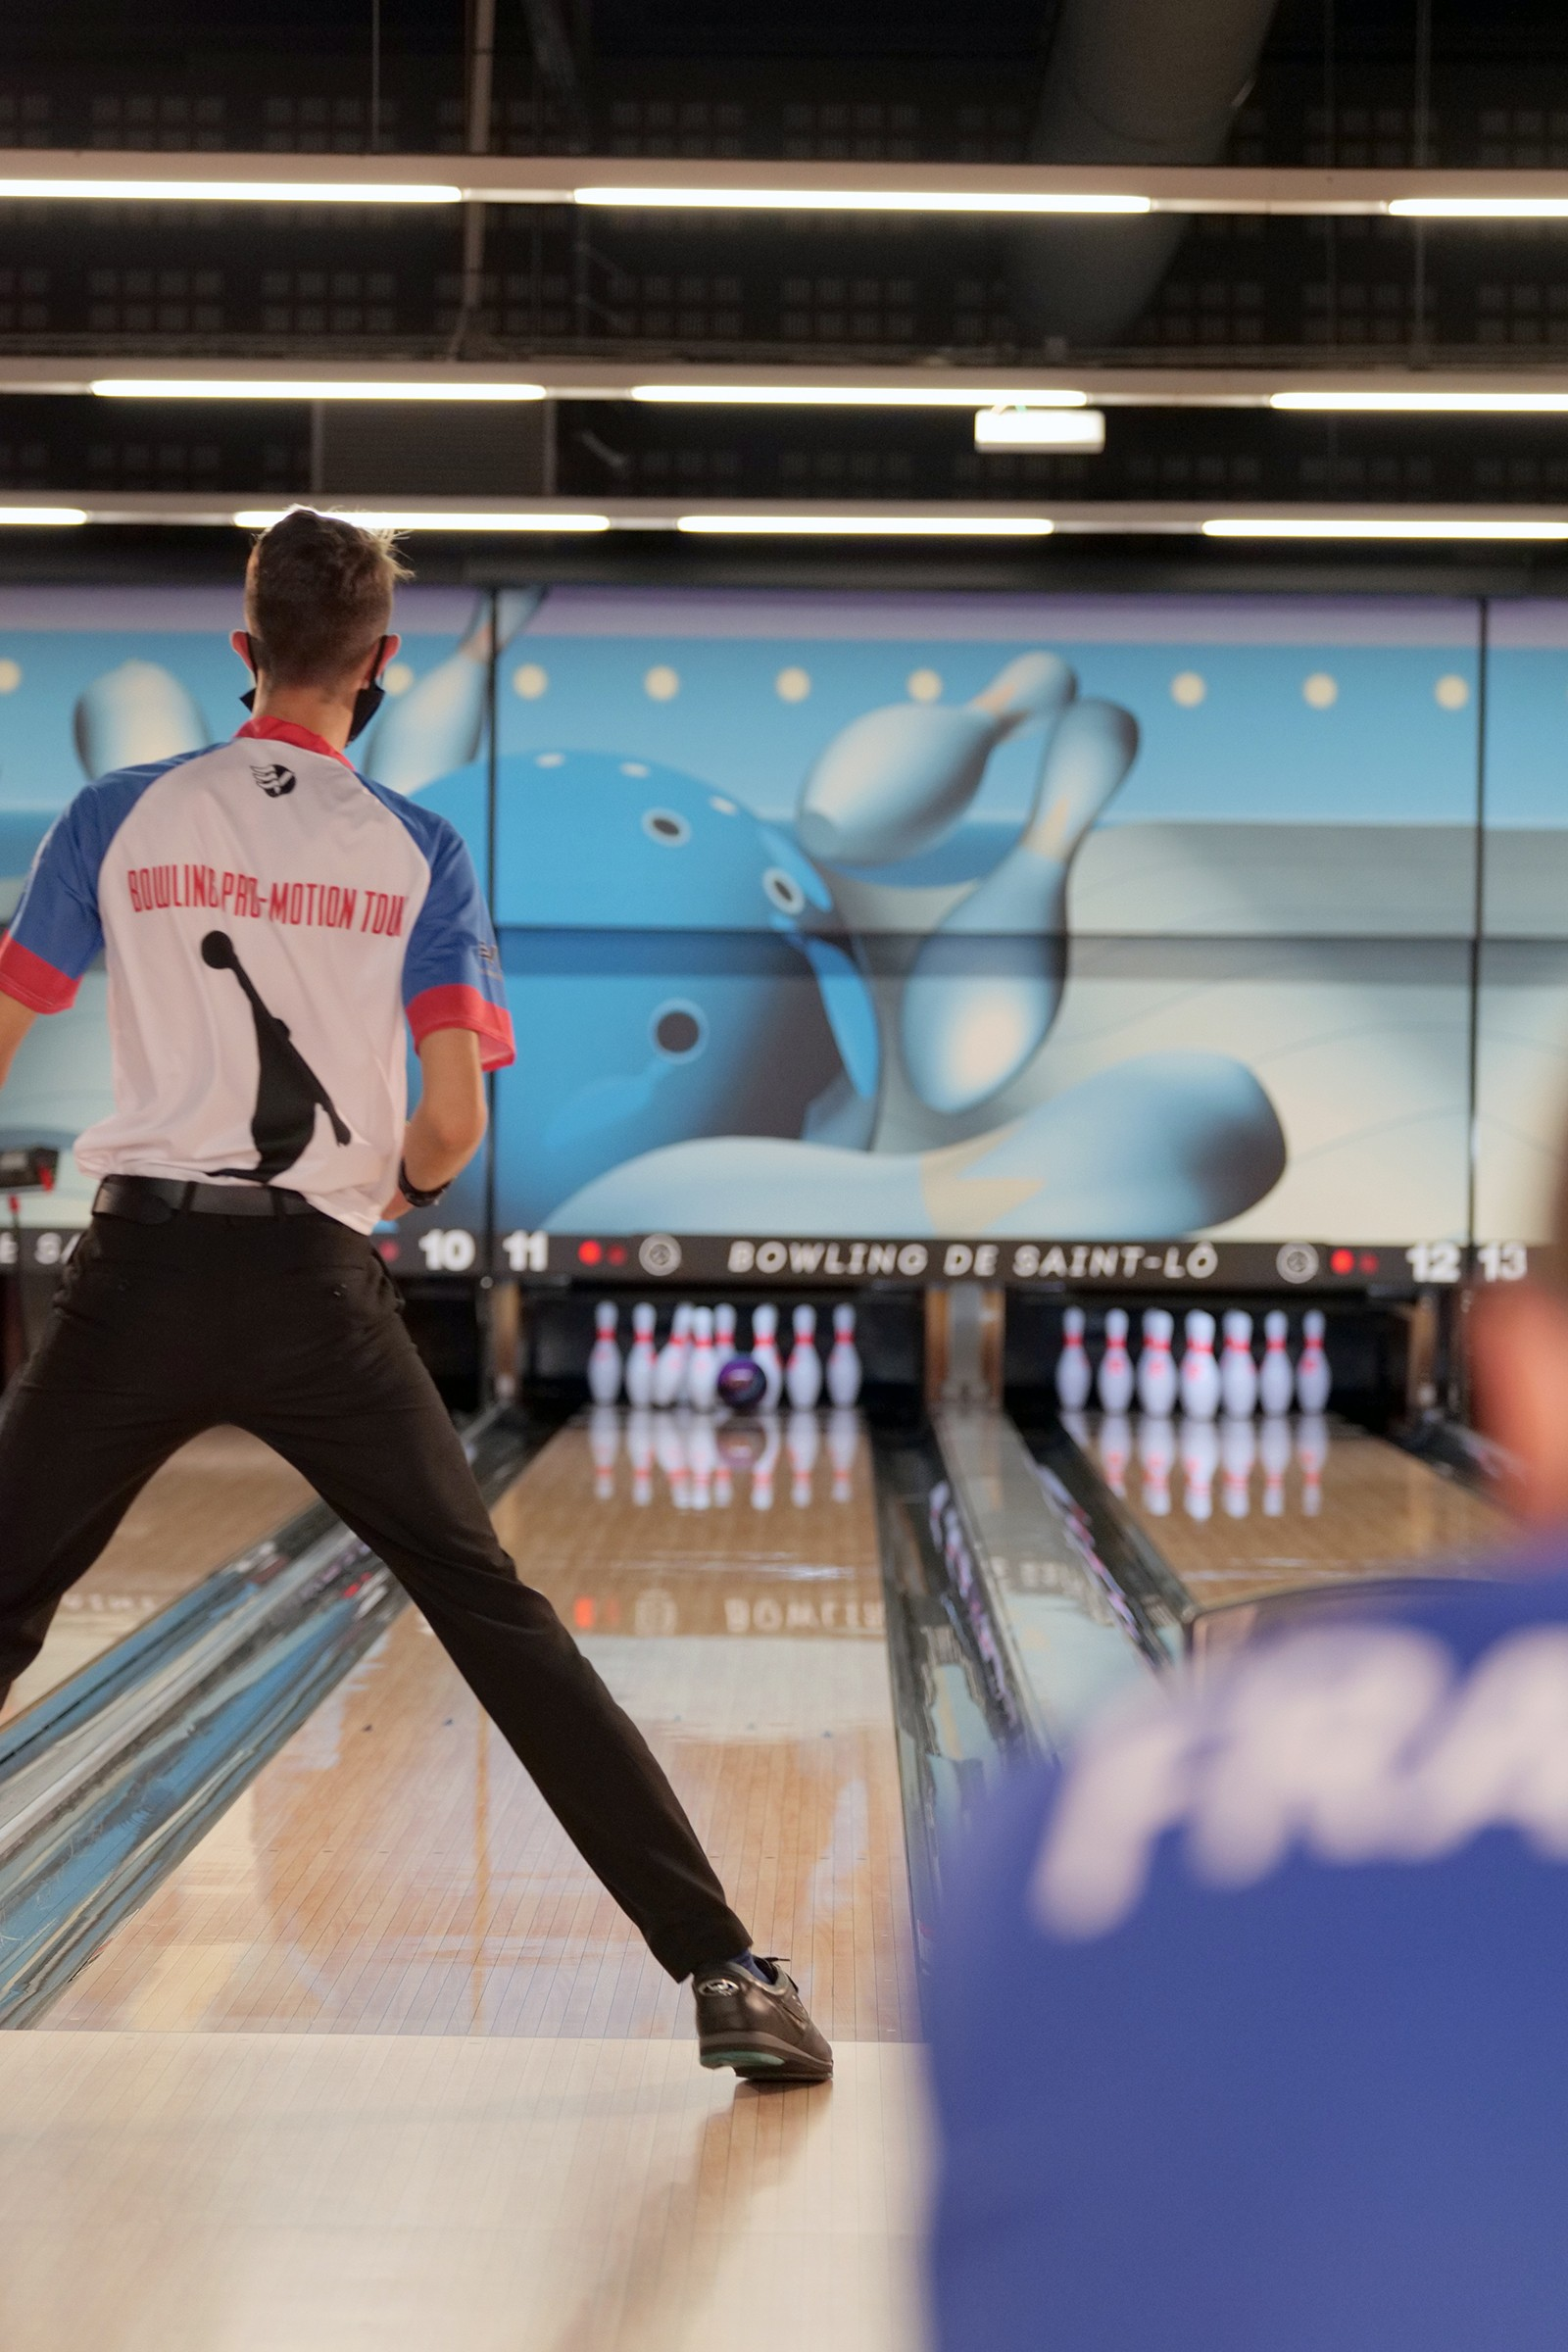 Bowling promotion tour 2020 saint lo photos ruel alain 116